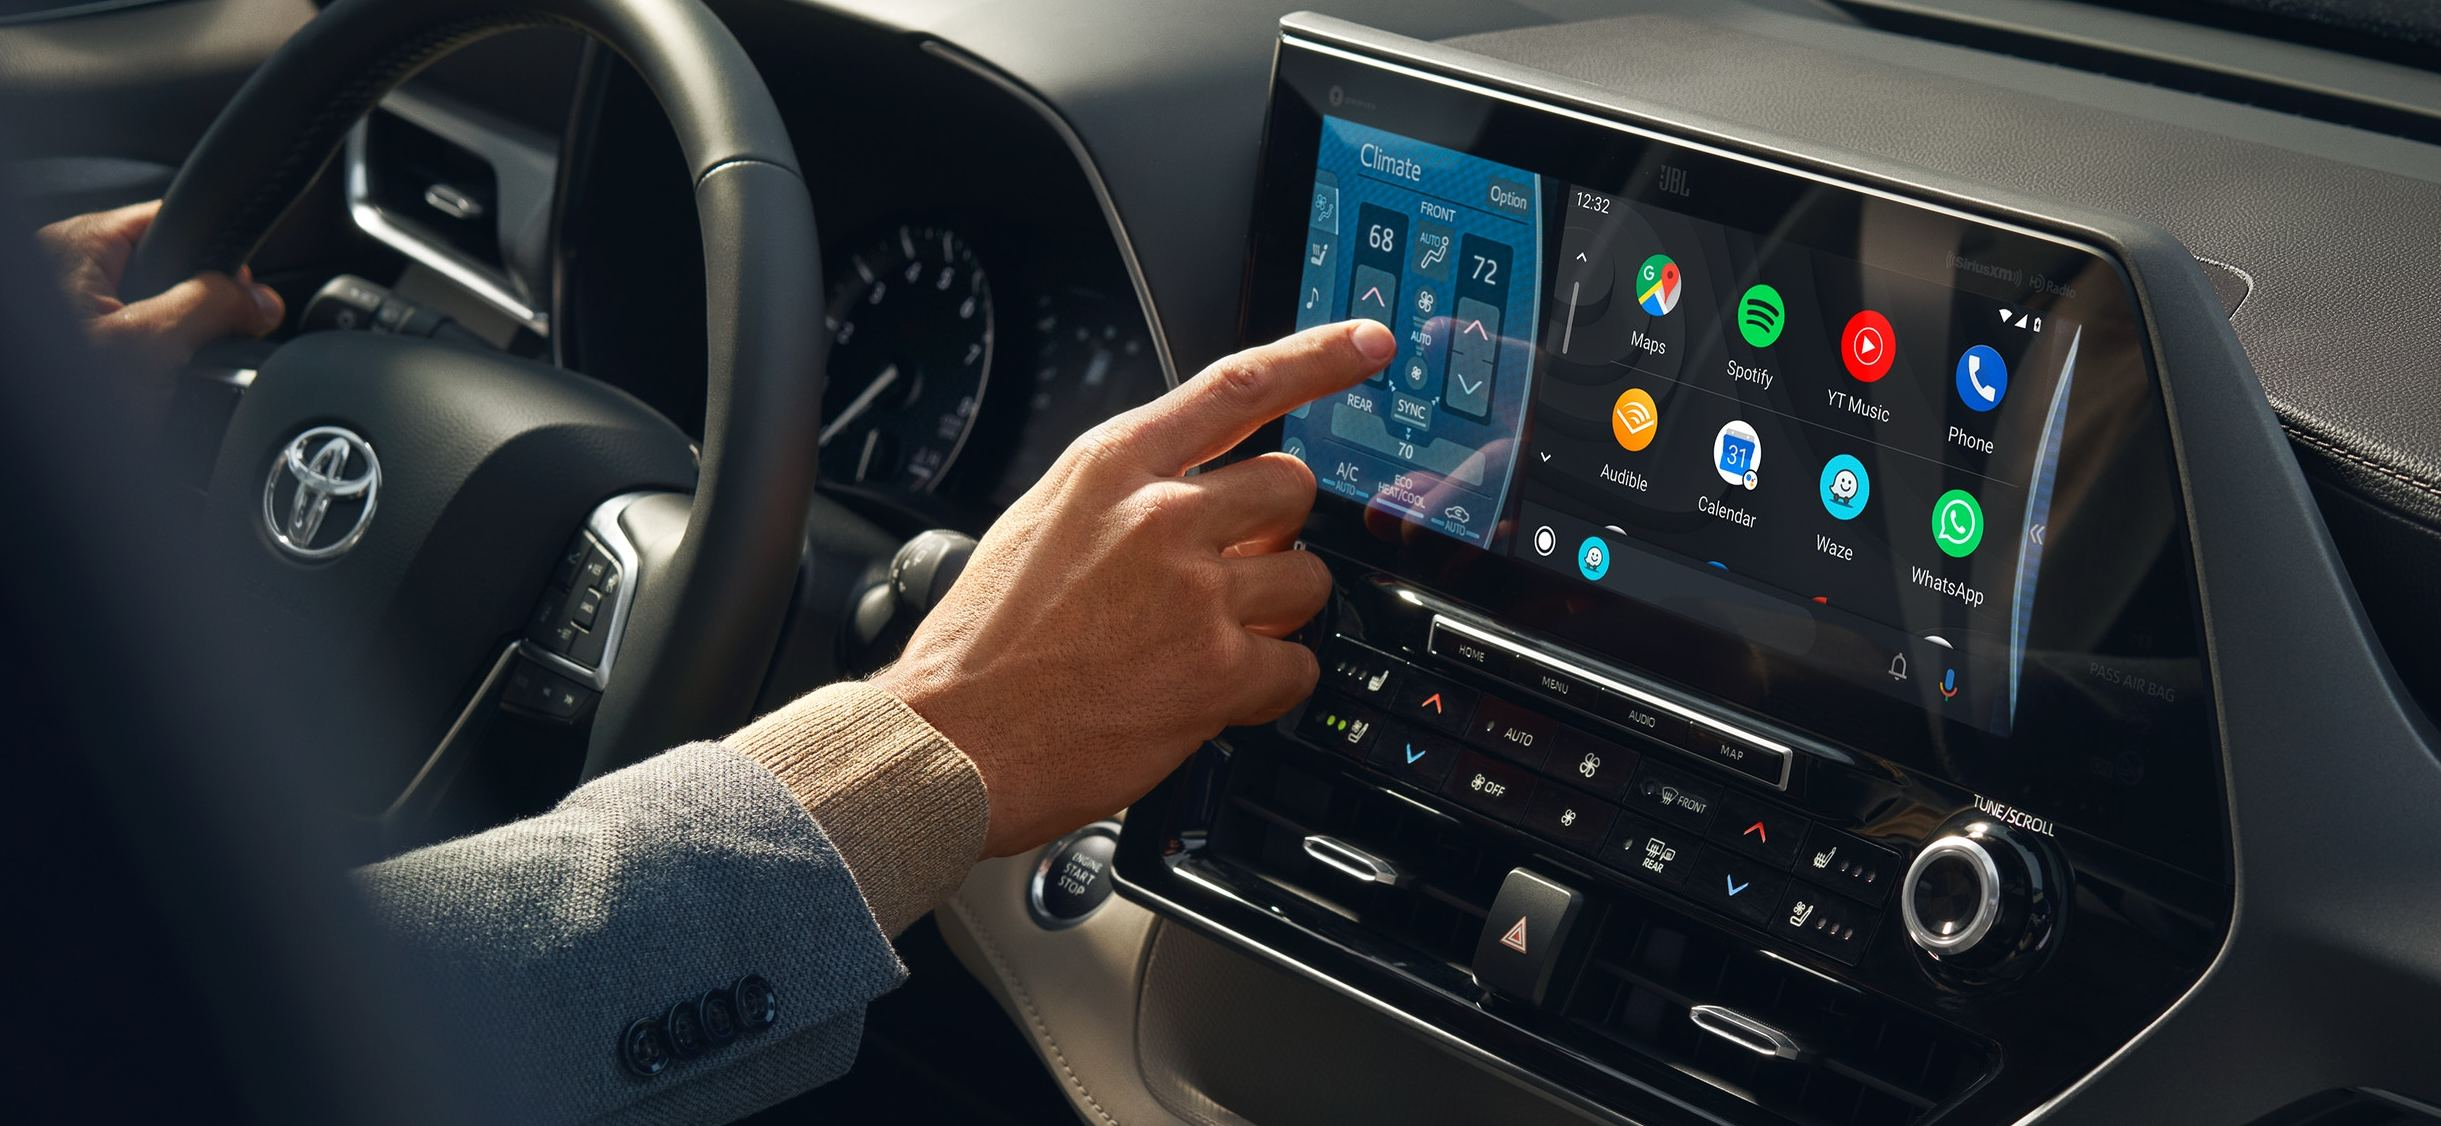 Technologies in the 2020 Highlander